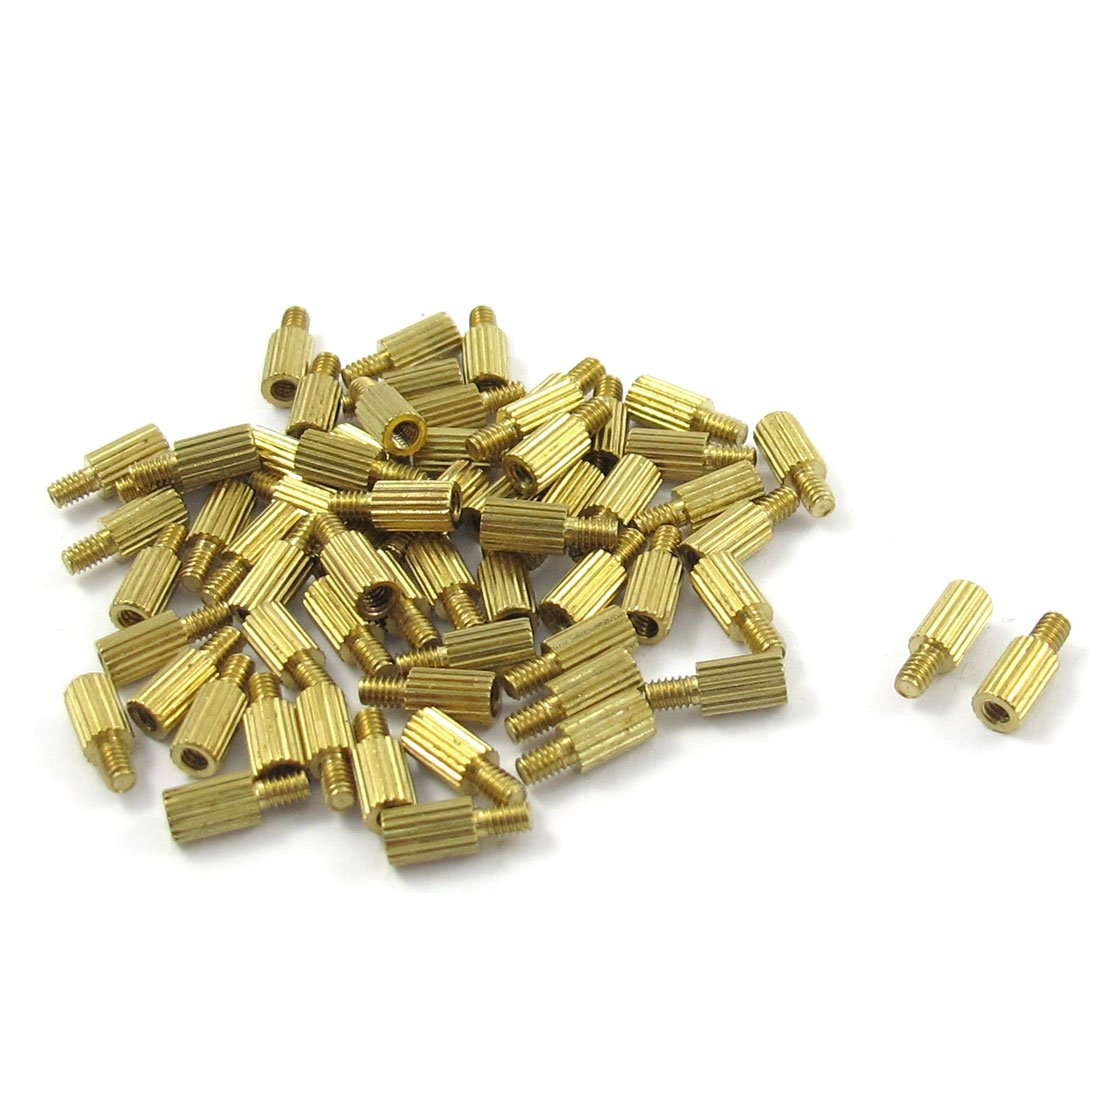 CSS 50 Pcs Male to Female Thread Brass Pillars Standoff Spacer M2x5mmx8mm m2 3 3 1pcs brass standoff 3mm spacer standard male female brass standoffs metric thread column high quality 1 piece sale